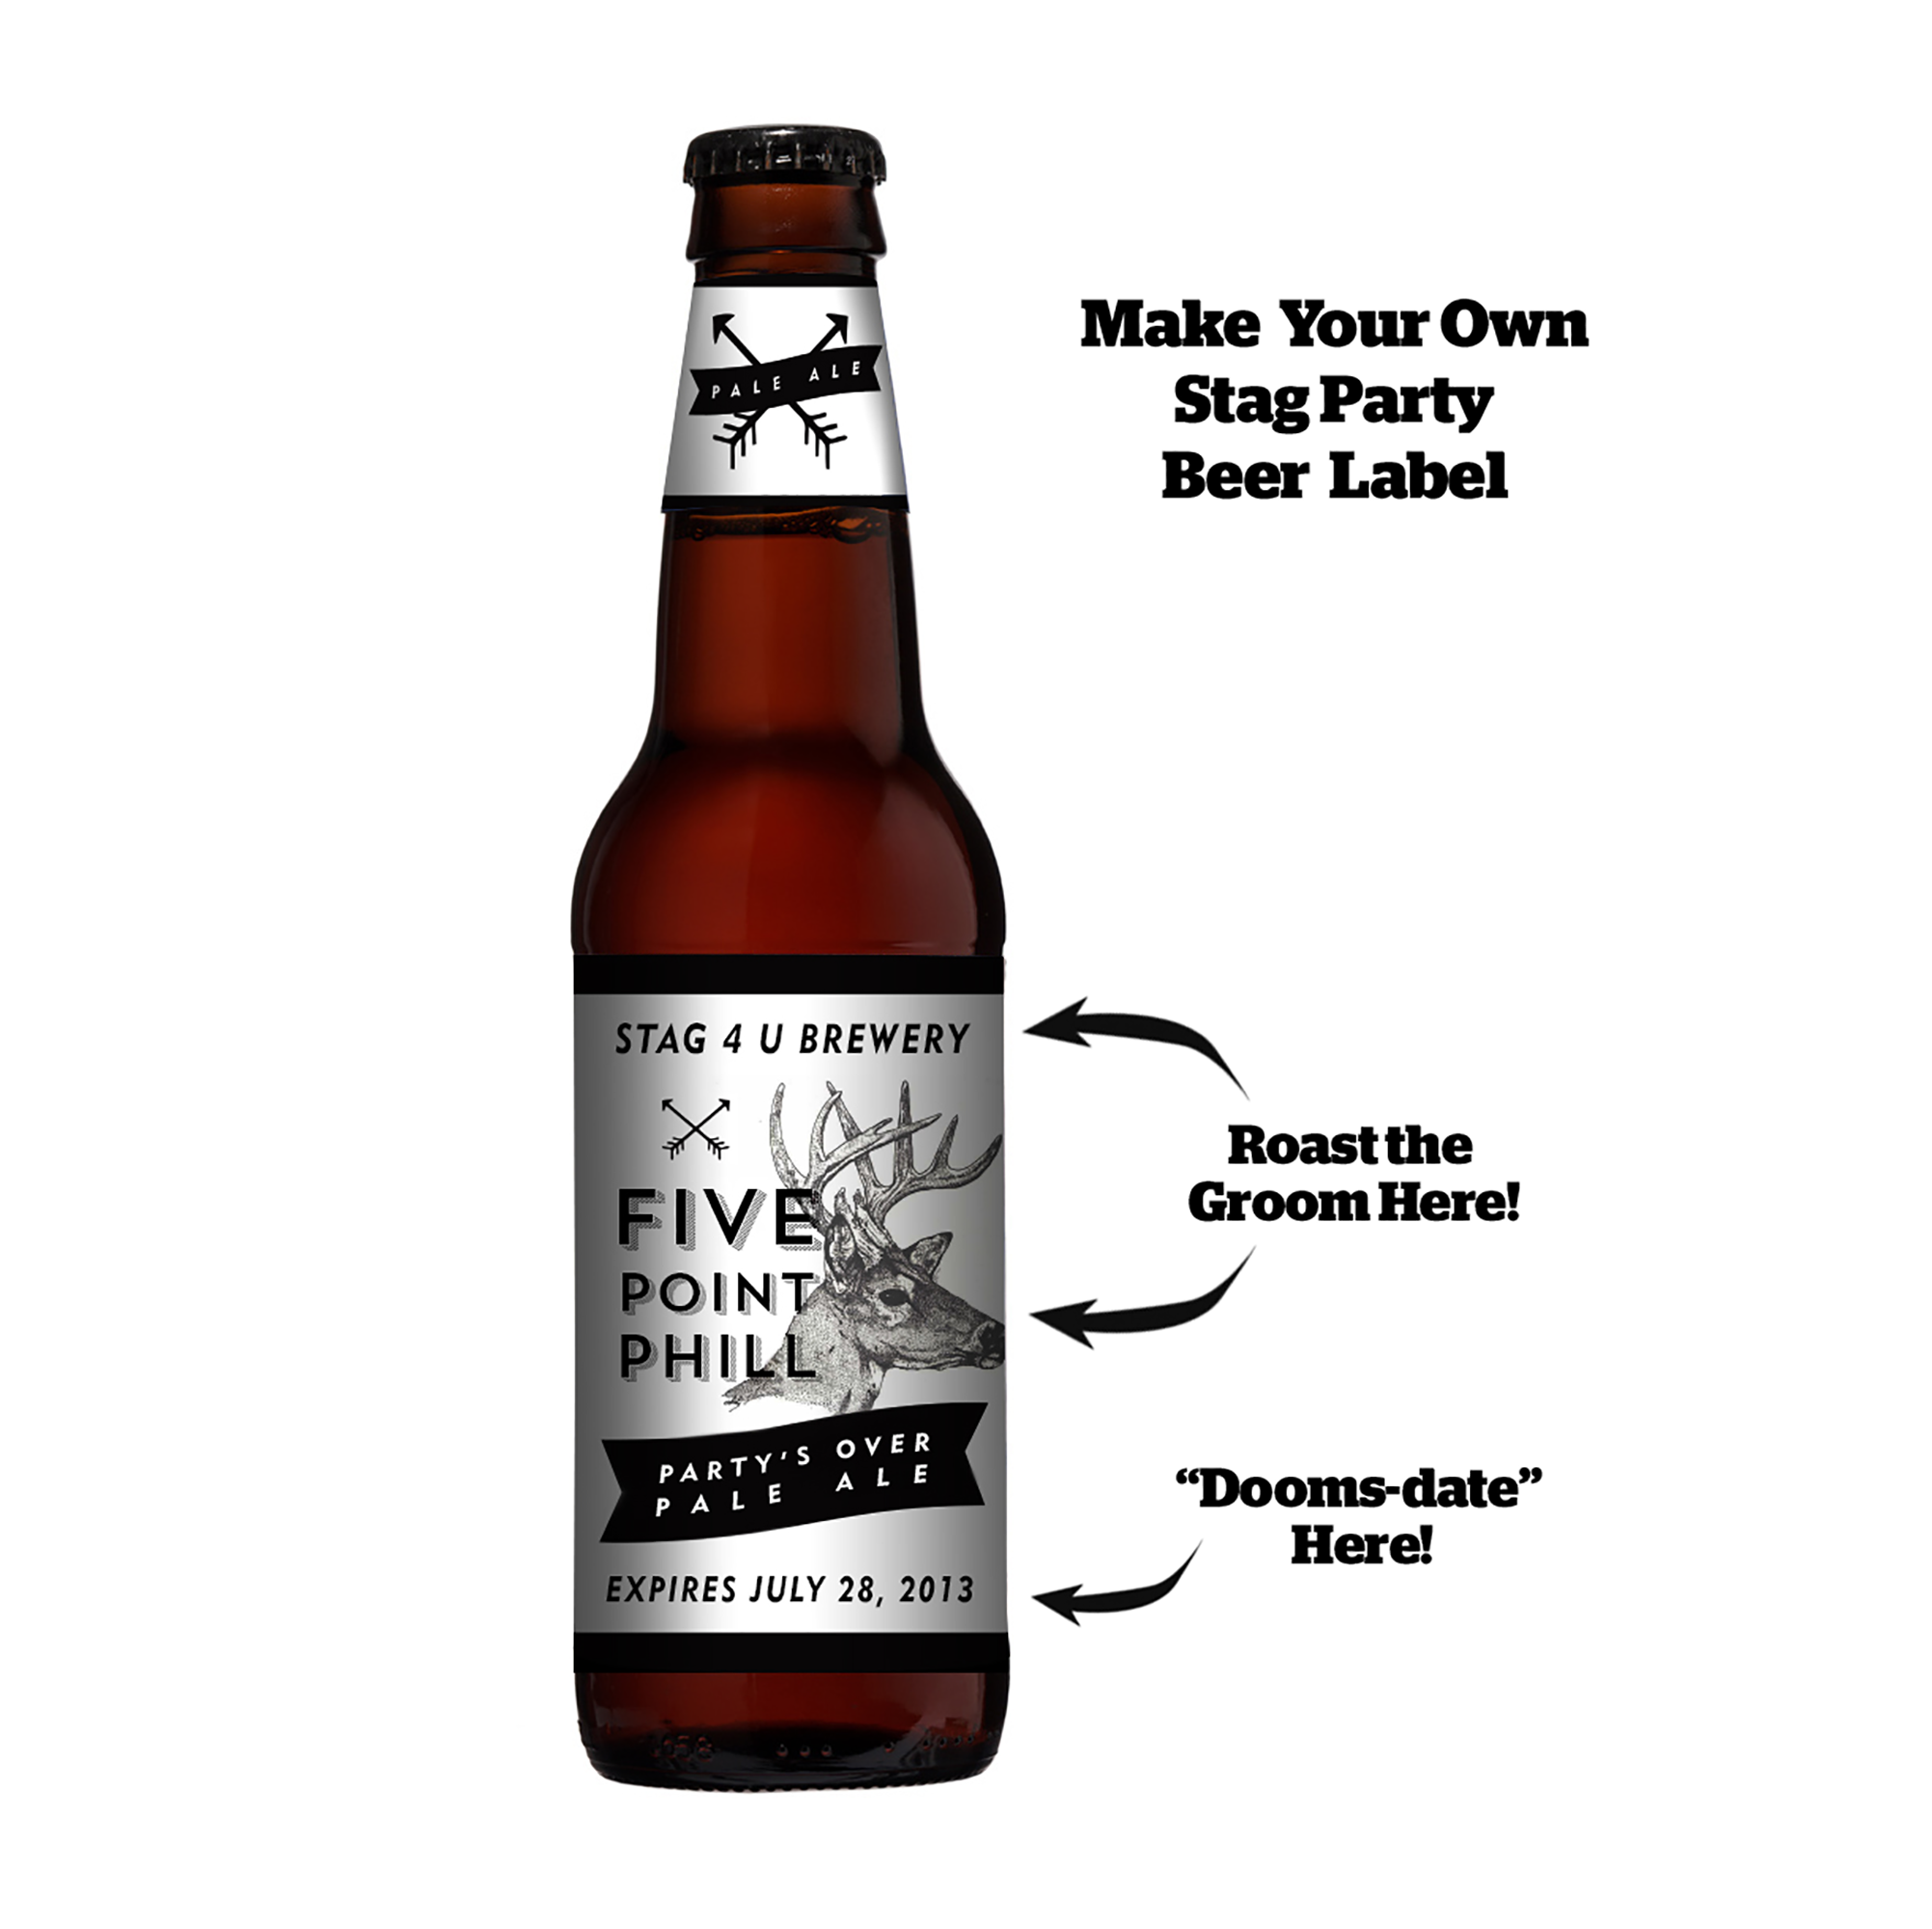 Make this Beer Label Your Own! Personalize the design for digital t-shirt printing.